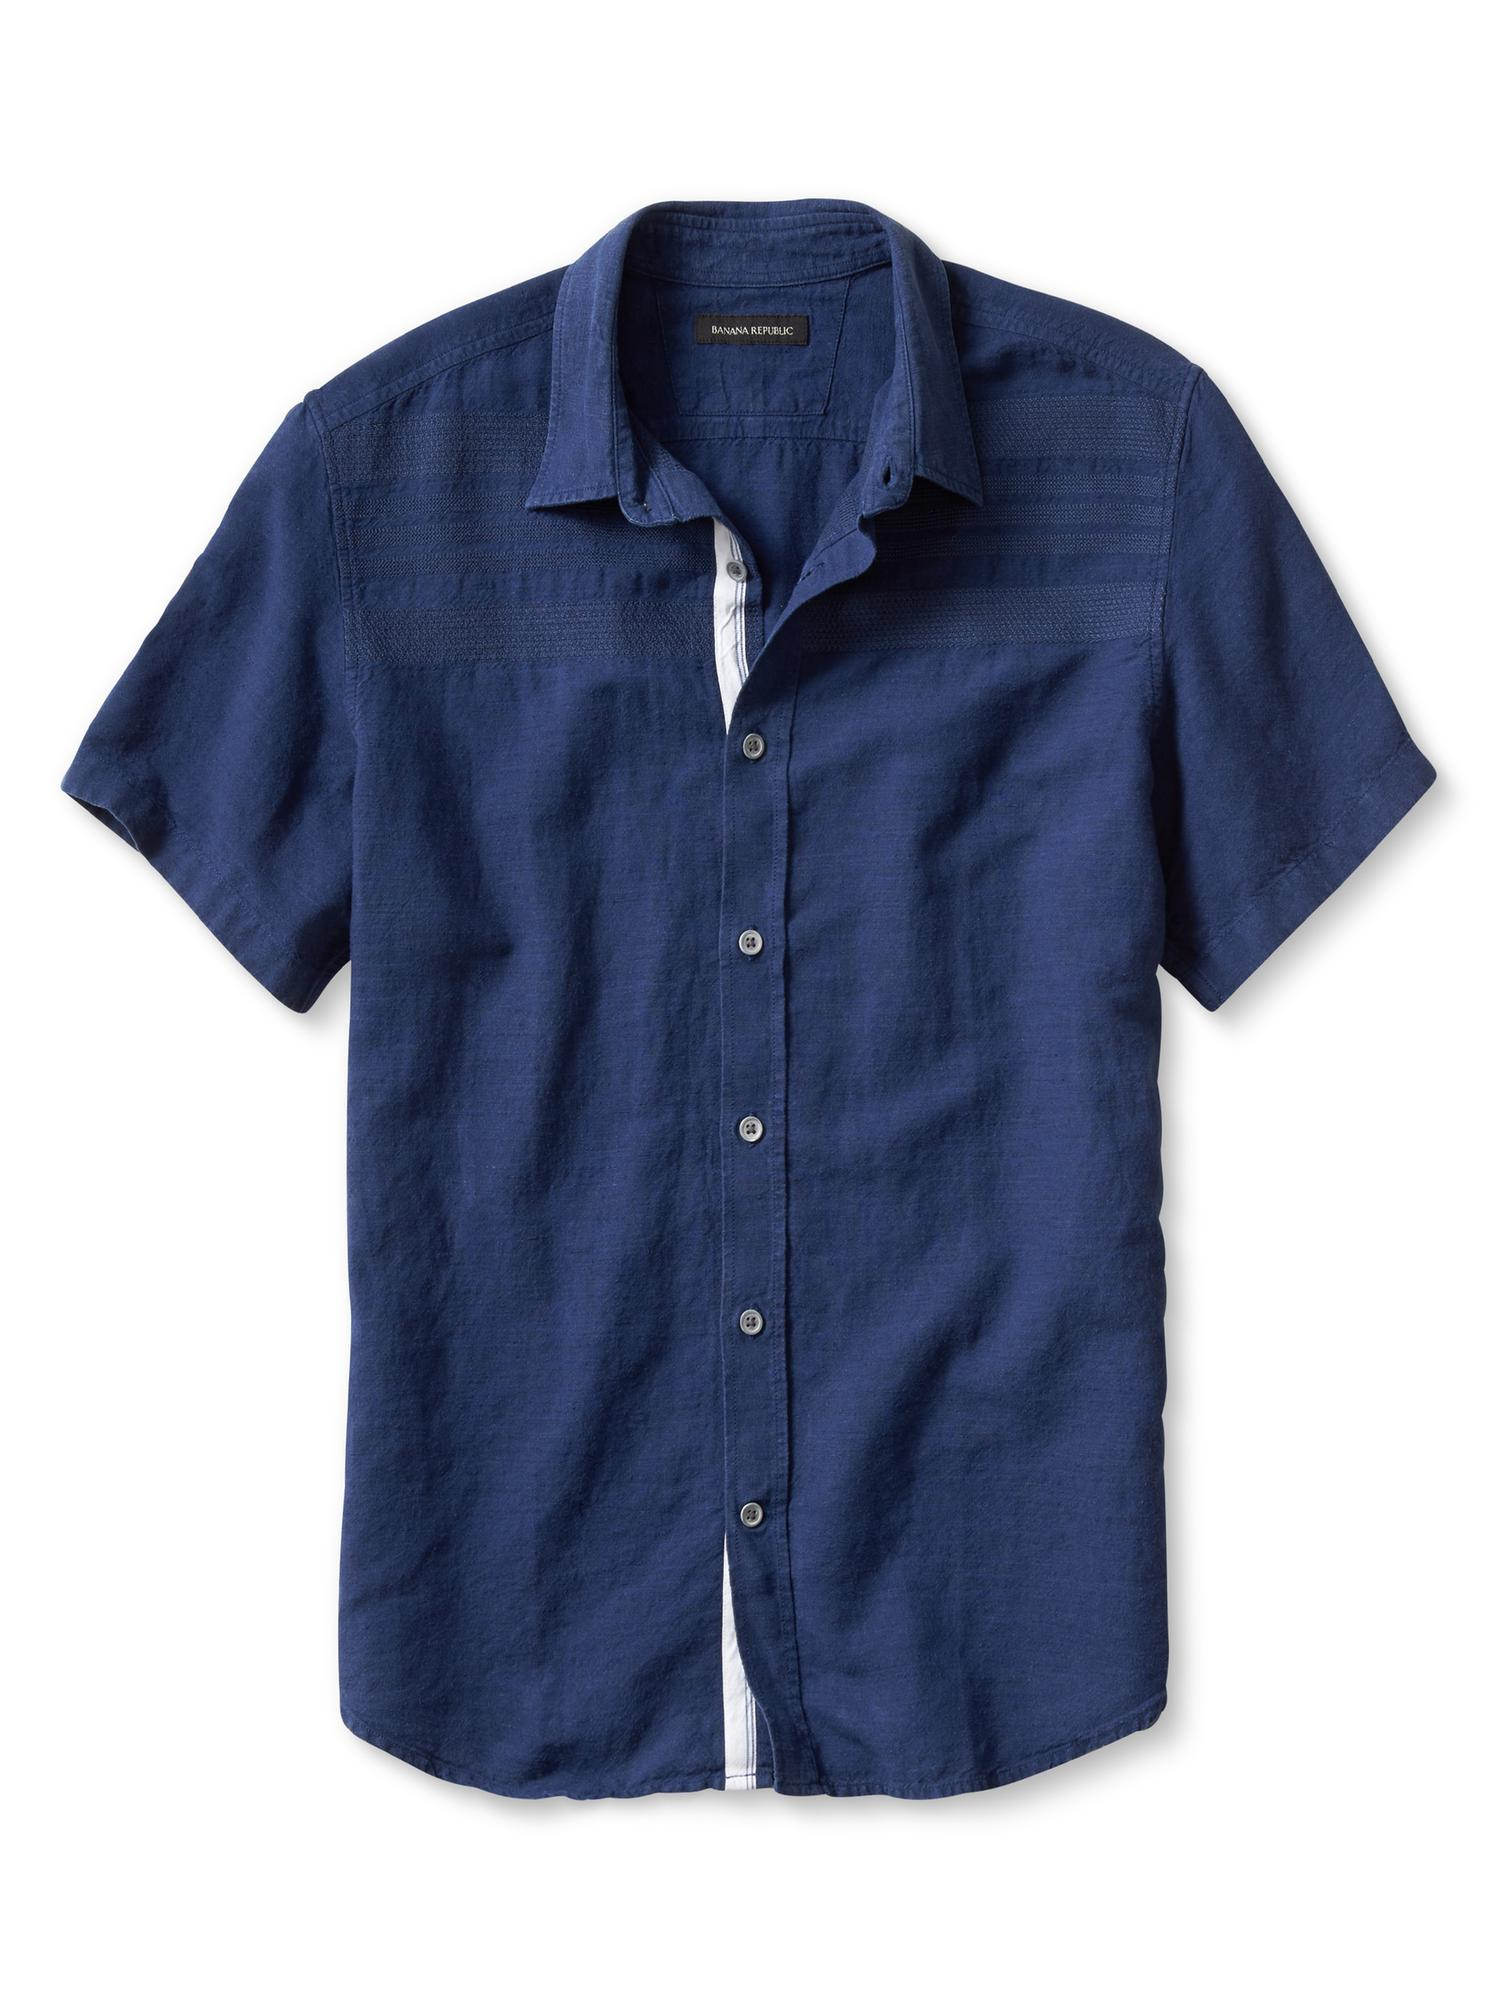 Craft an amazing look for work, holidays, date night or everyday wear with men's shirts from Banana Republic Factory. Browse a wide variety of shirts for men in this collection.